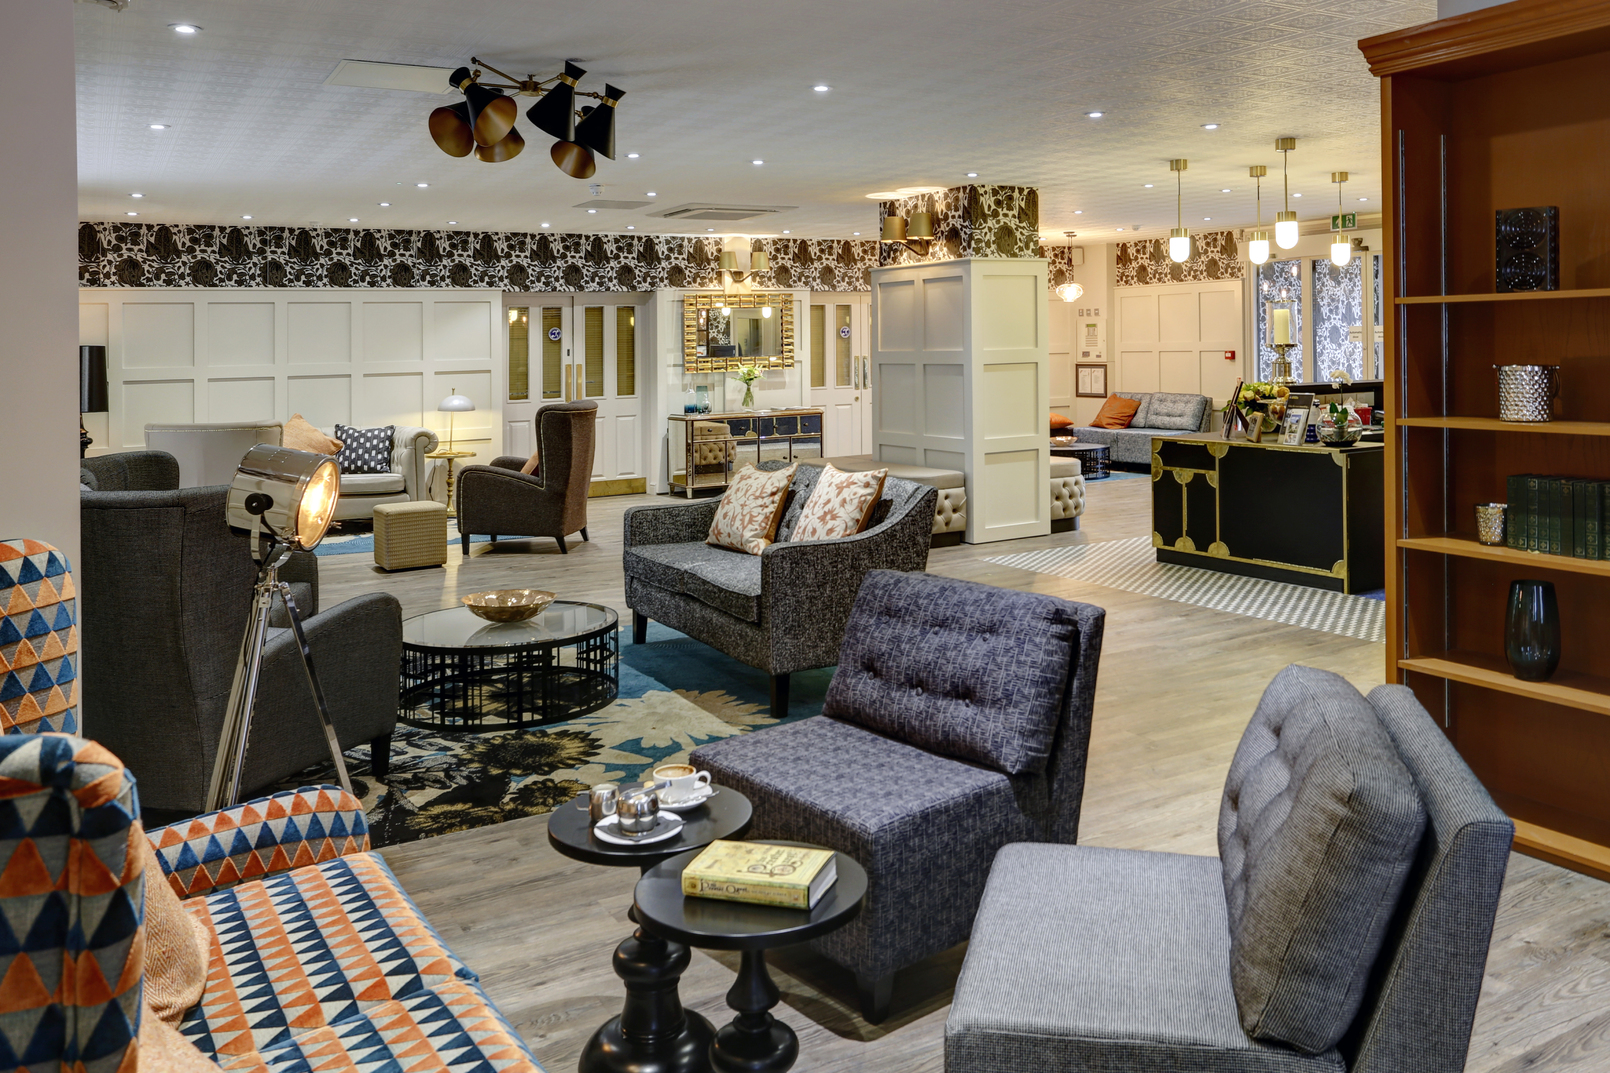 Best Western Plus Monkbar Hotel